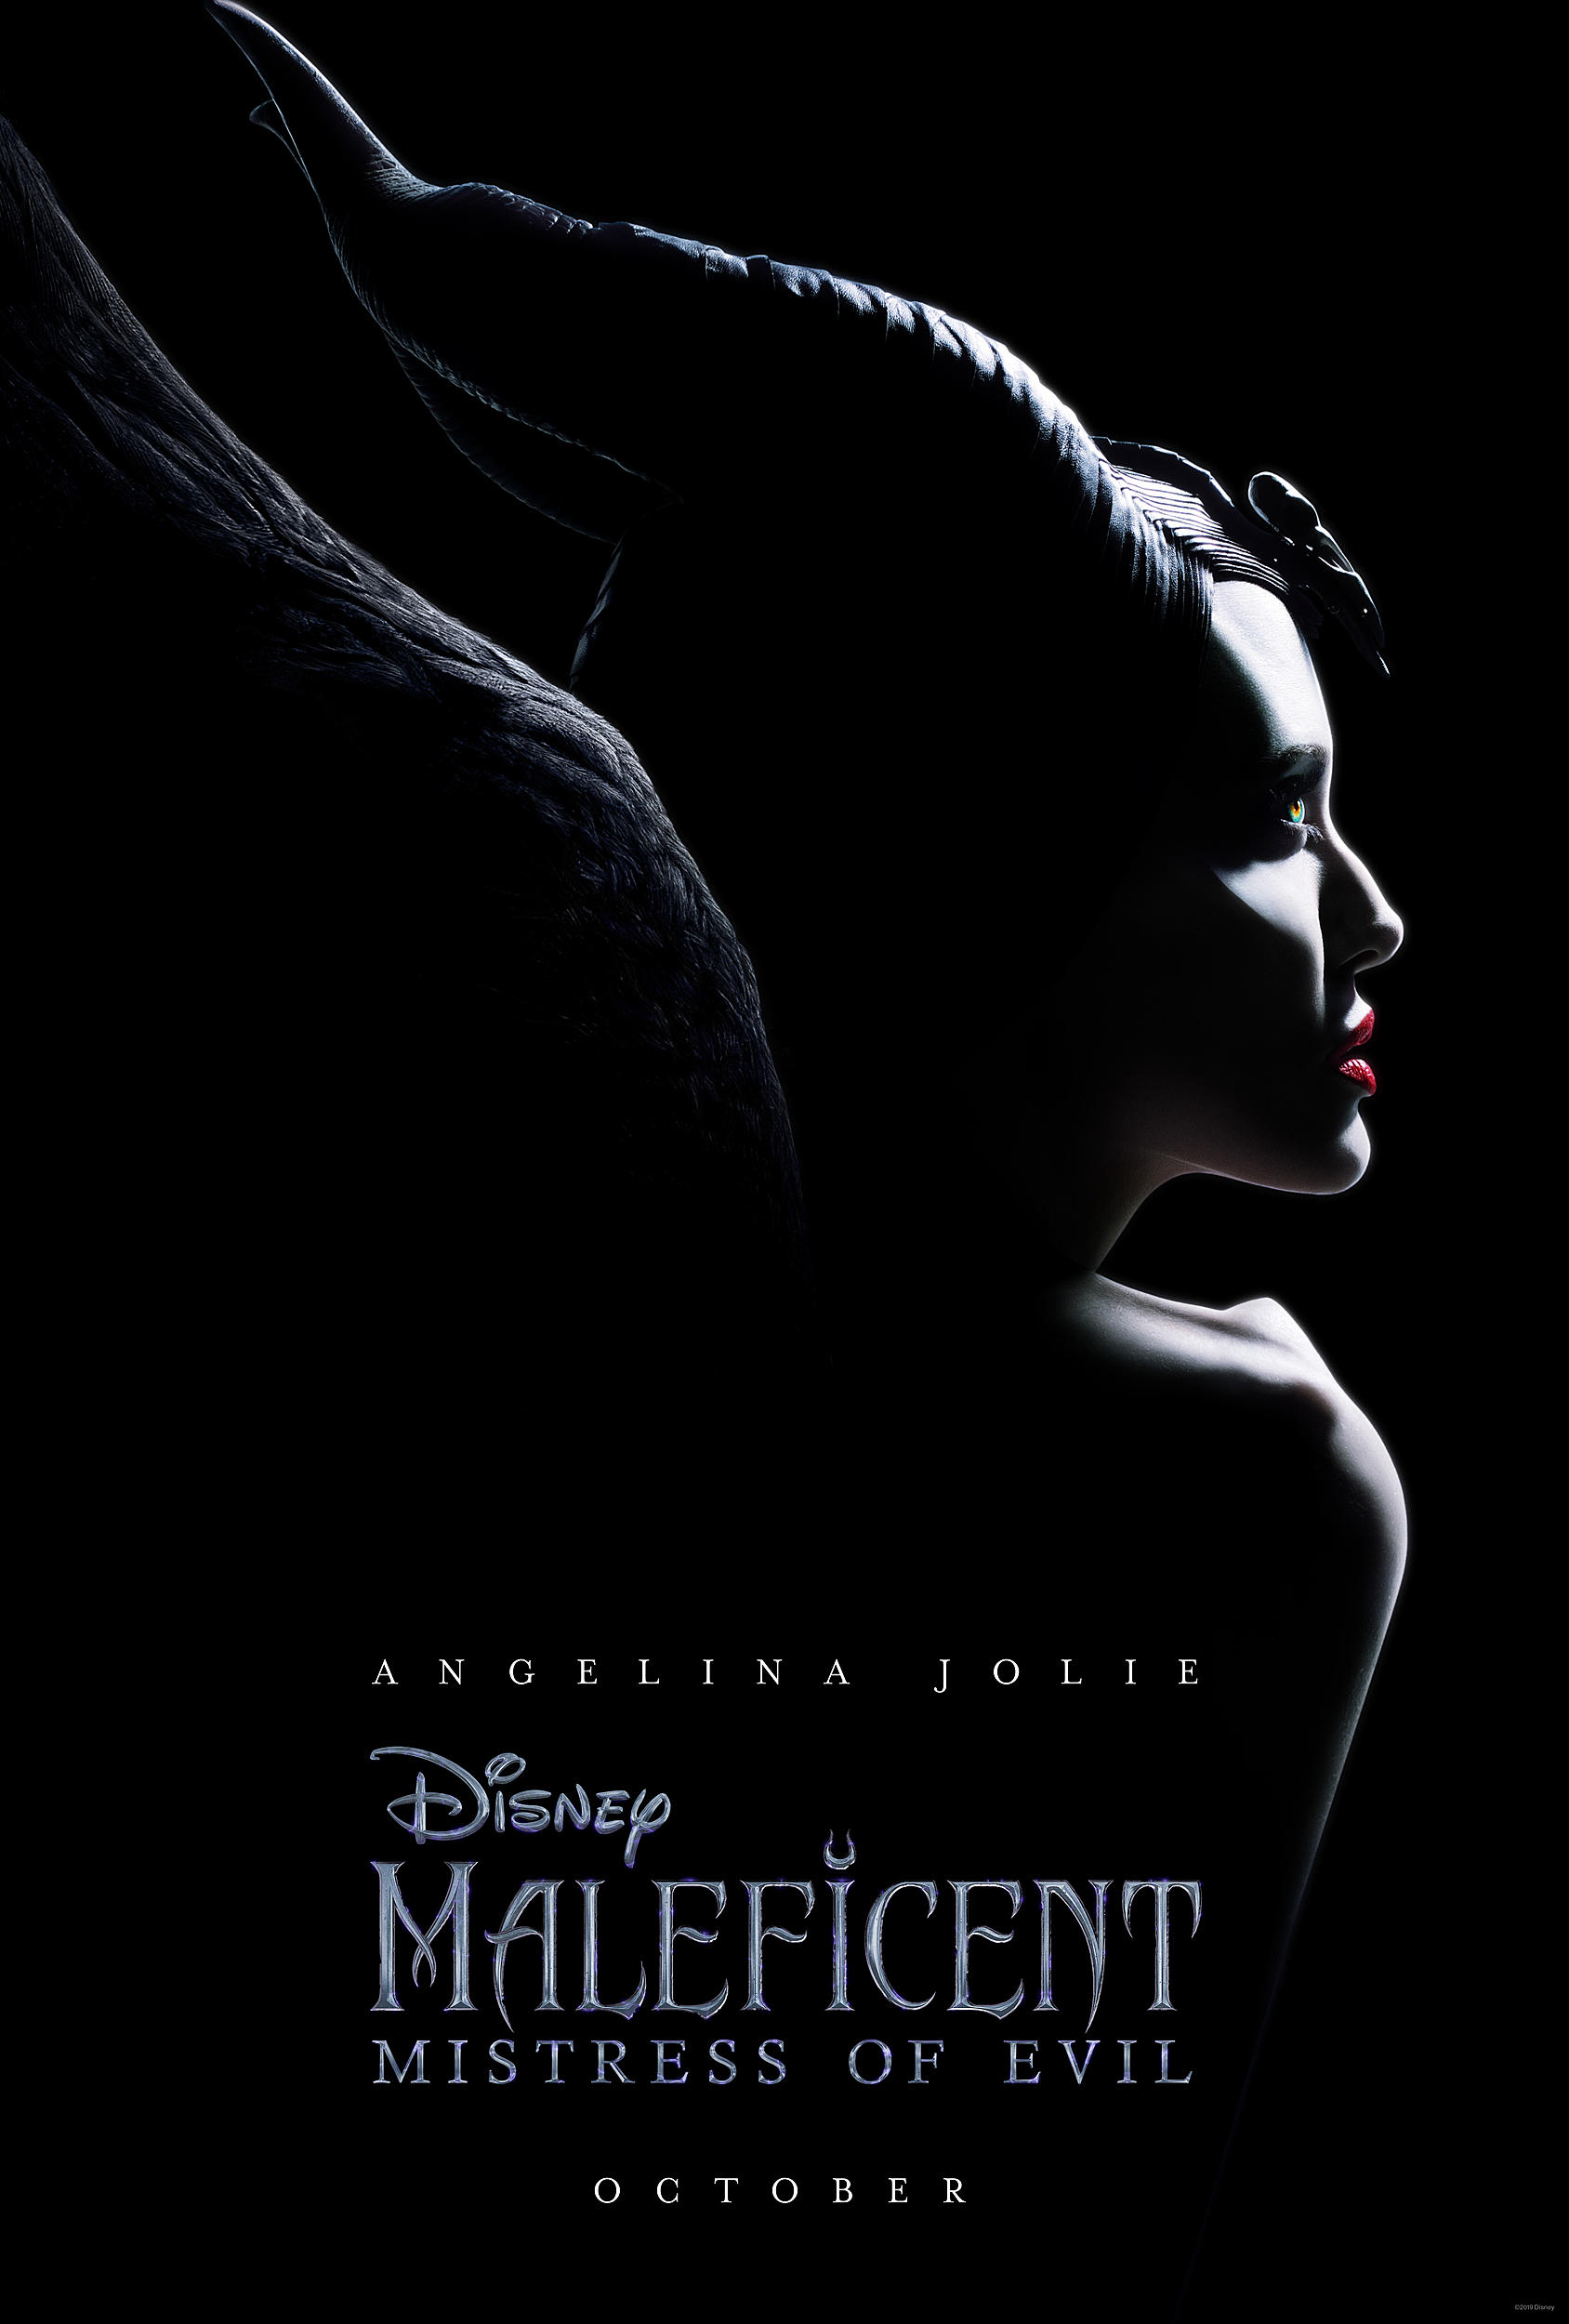 Maleficent Sequel Gets New Title Release Date And Poster